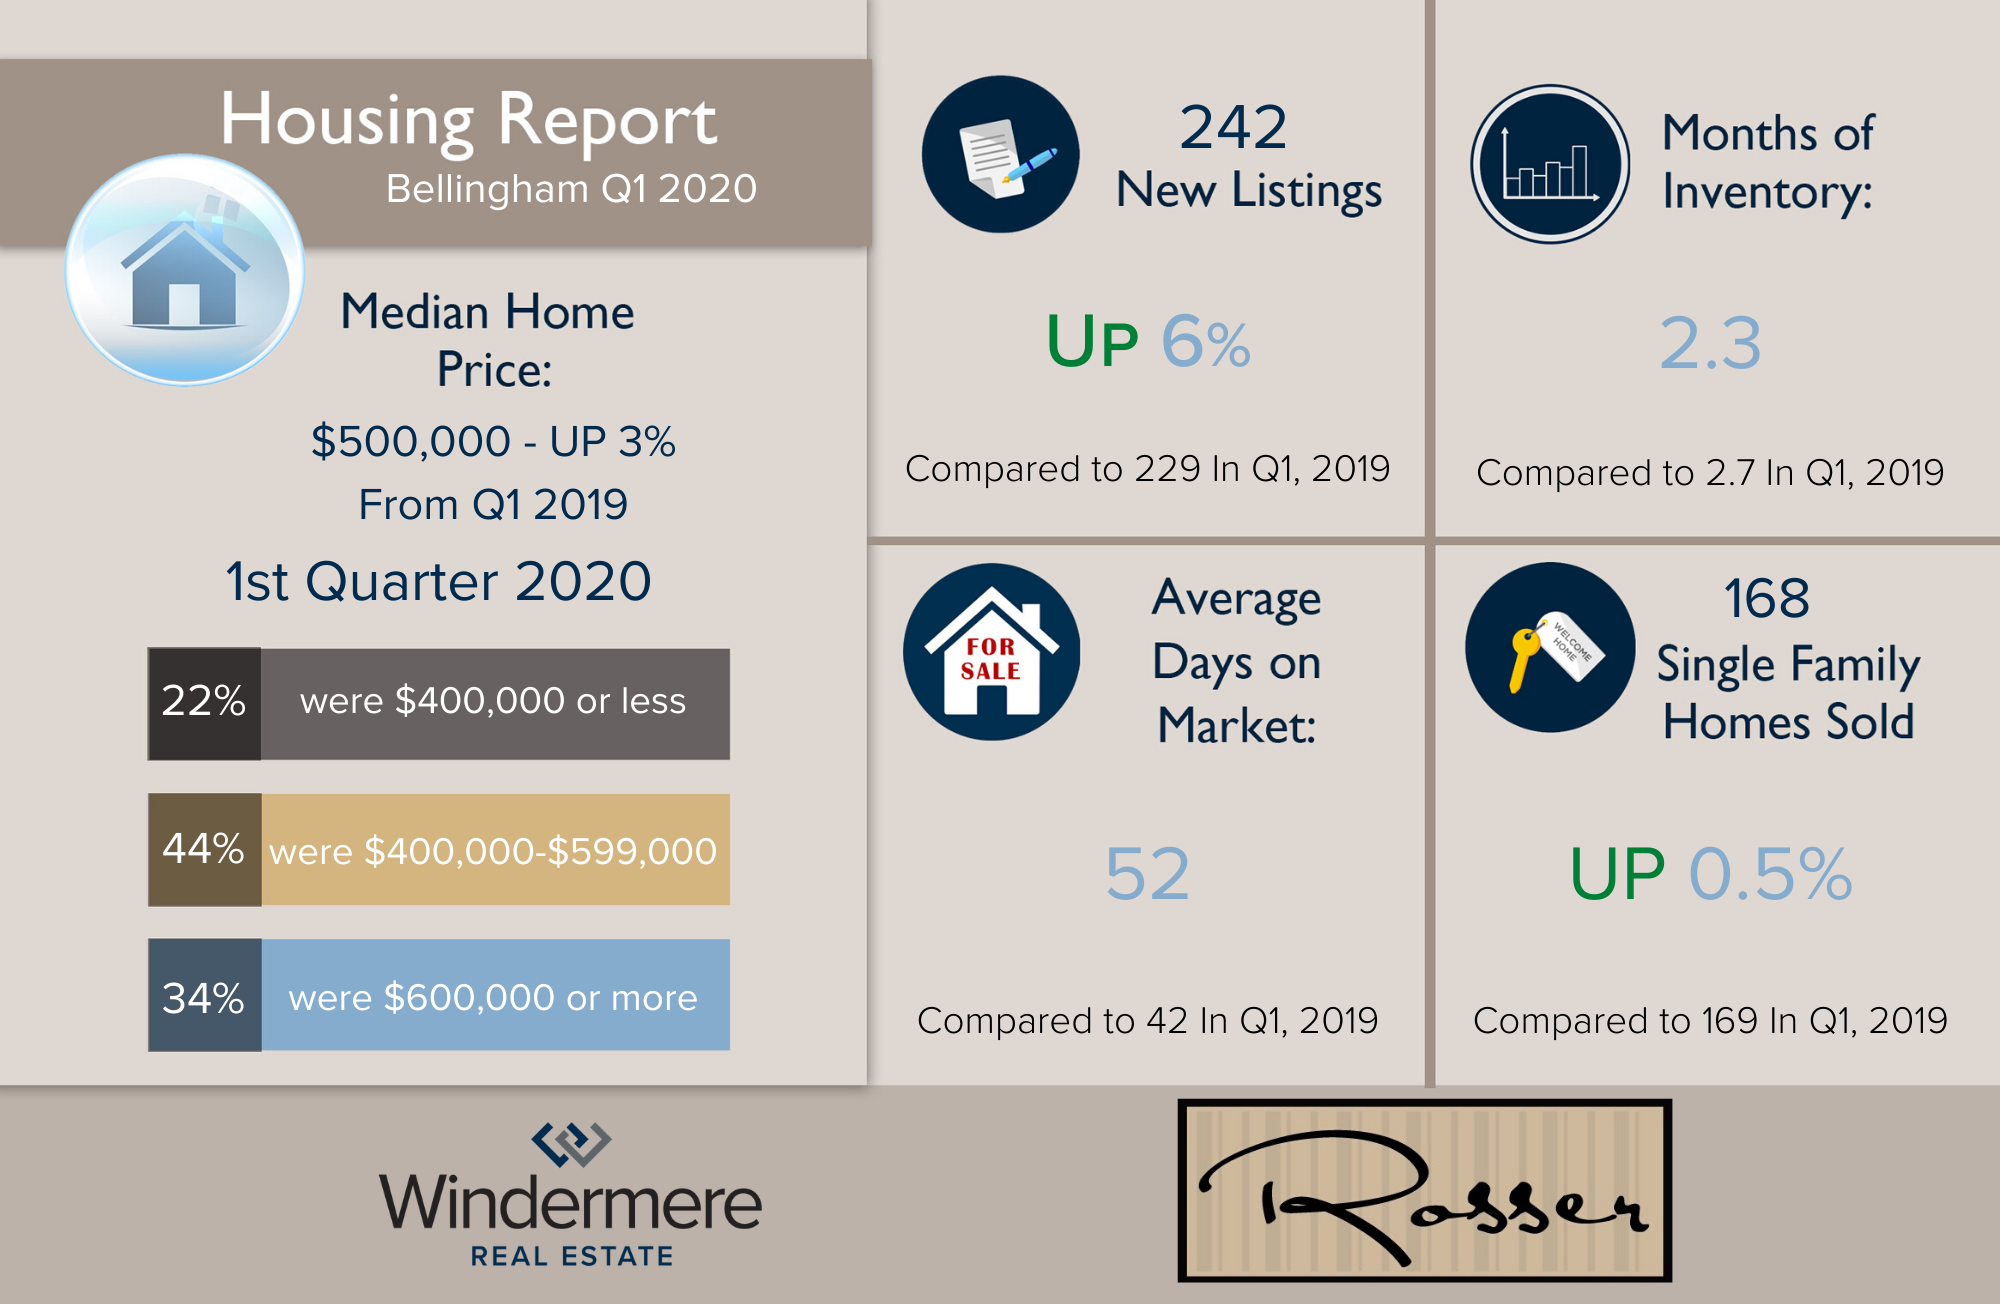 1st QTR 2020 Infographic